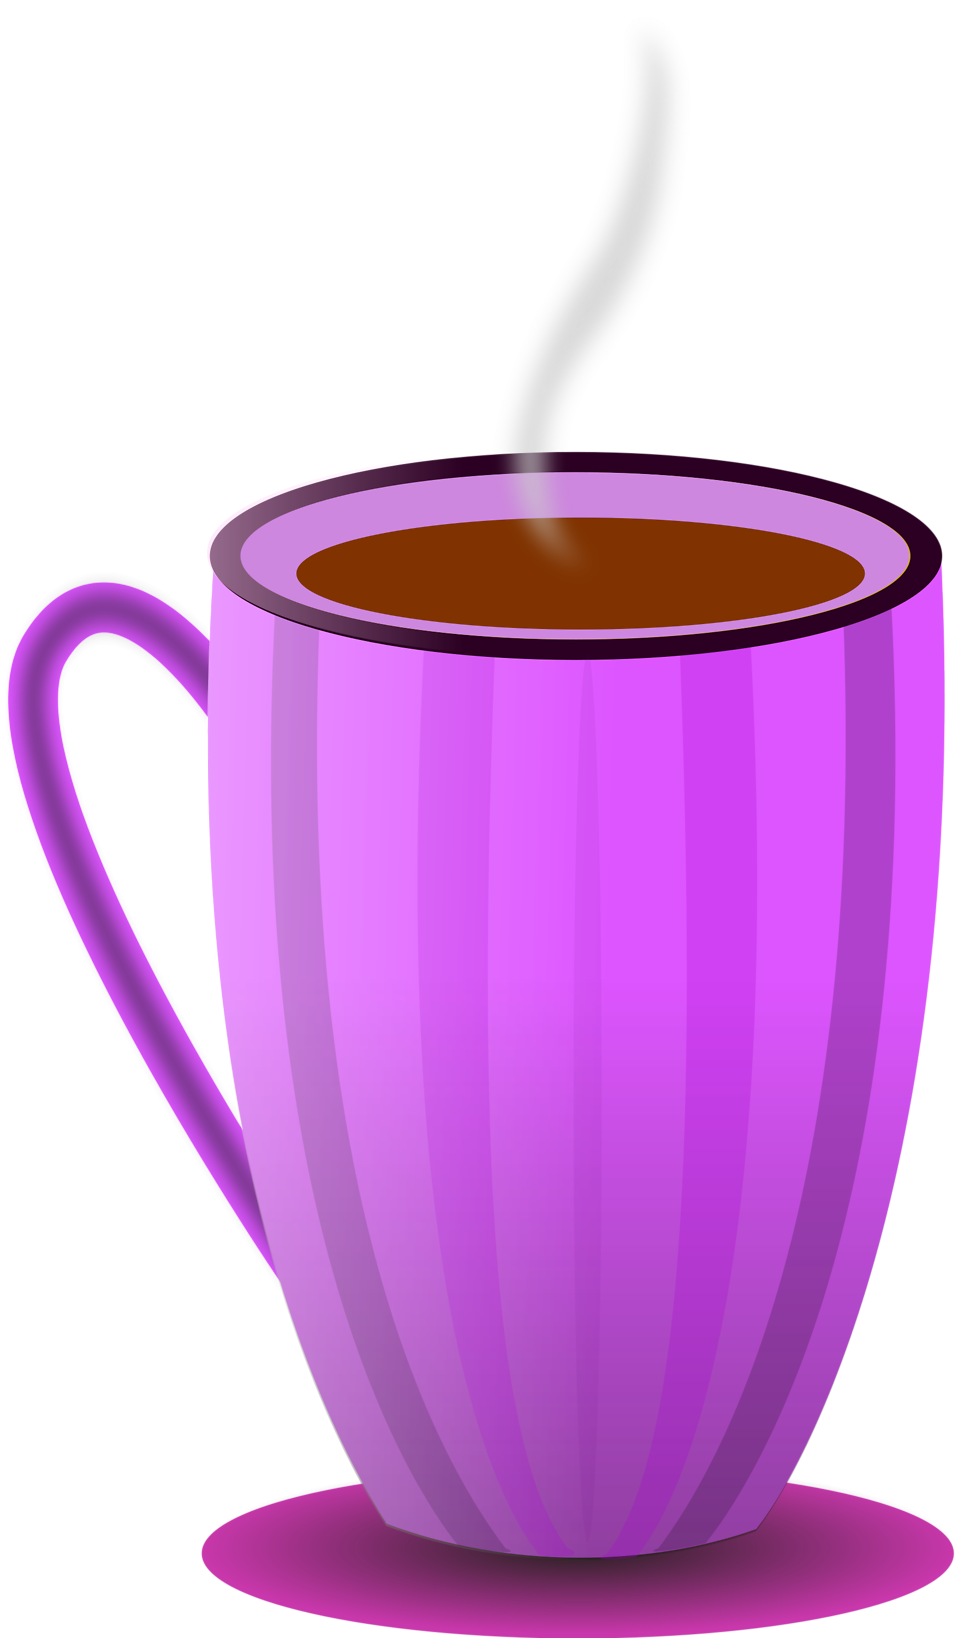 Coffee free stock photo. Hot clipart coffe